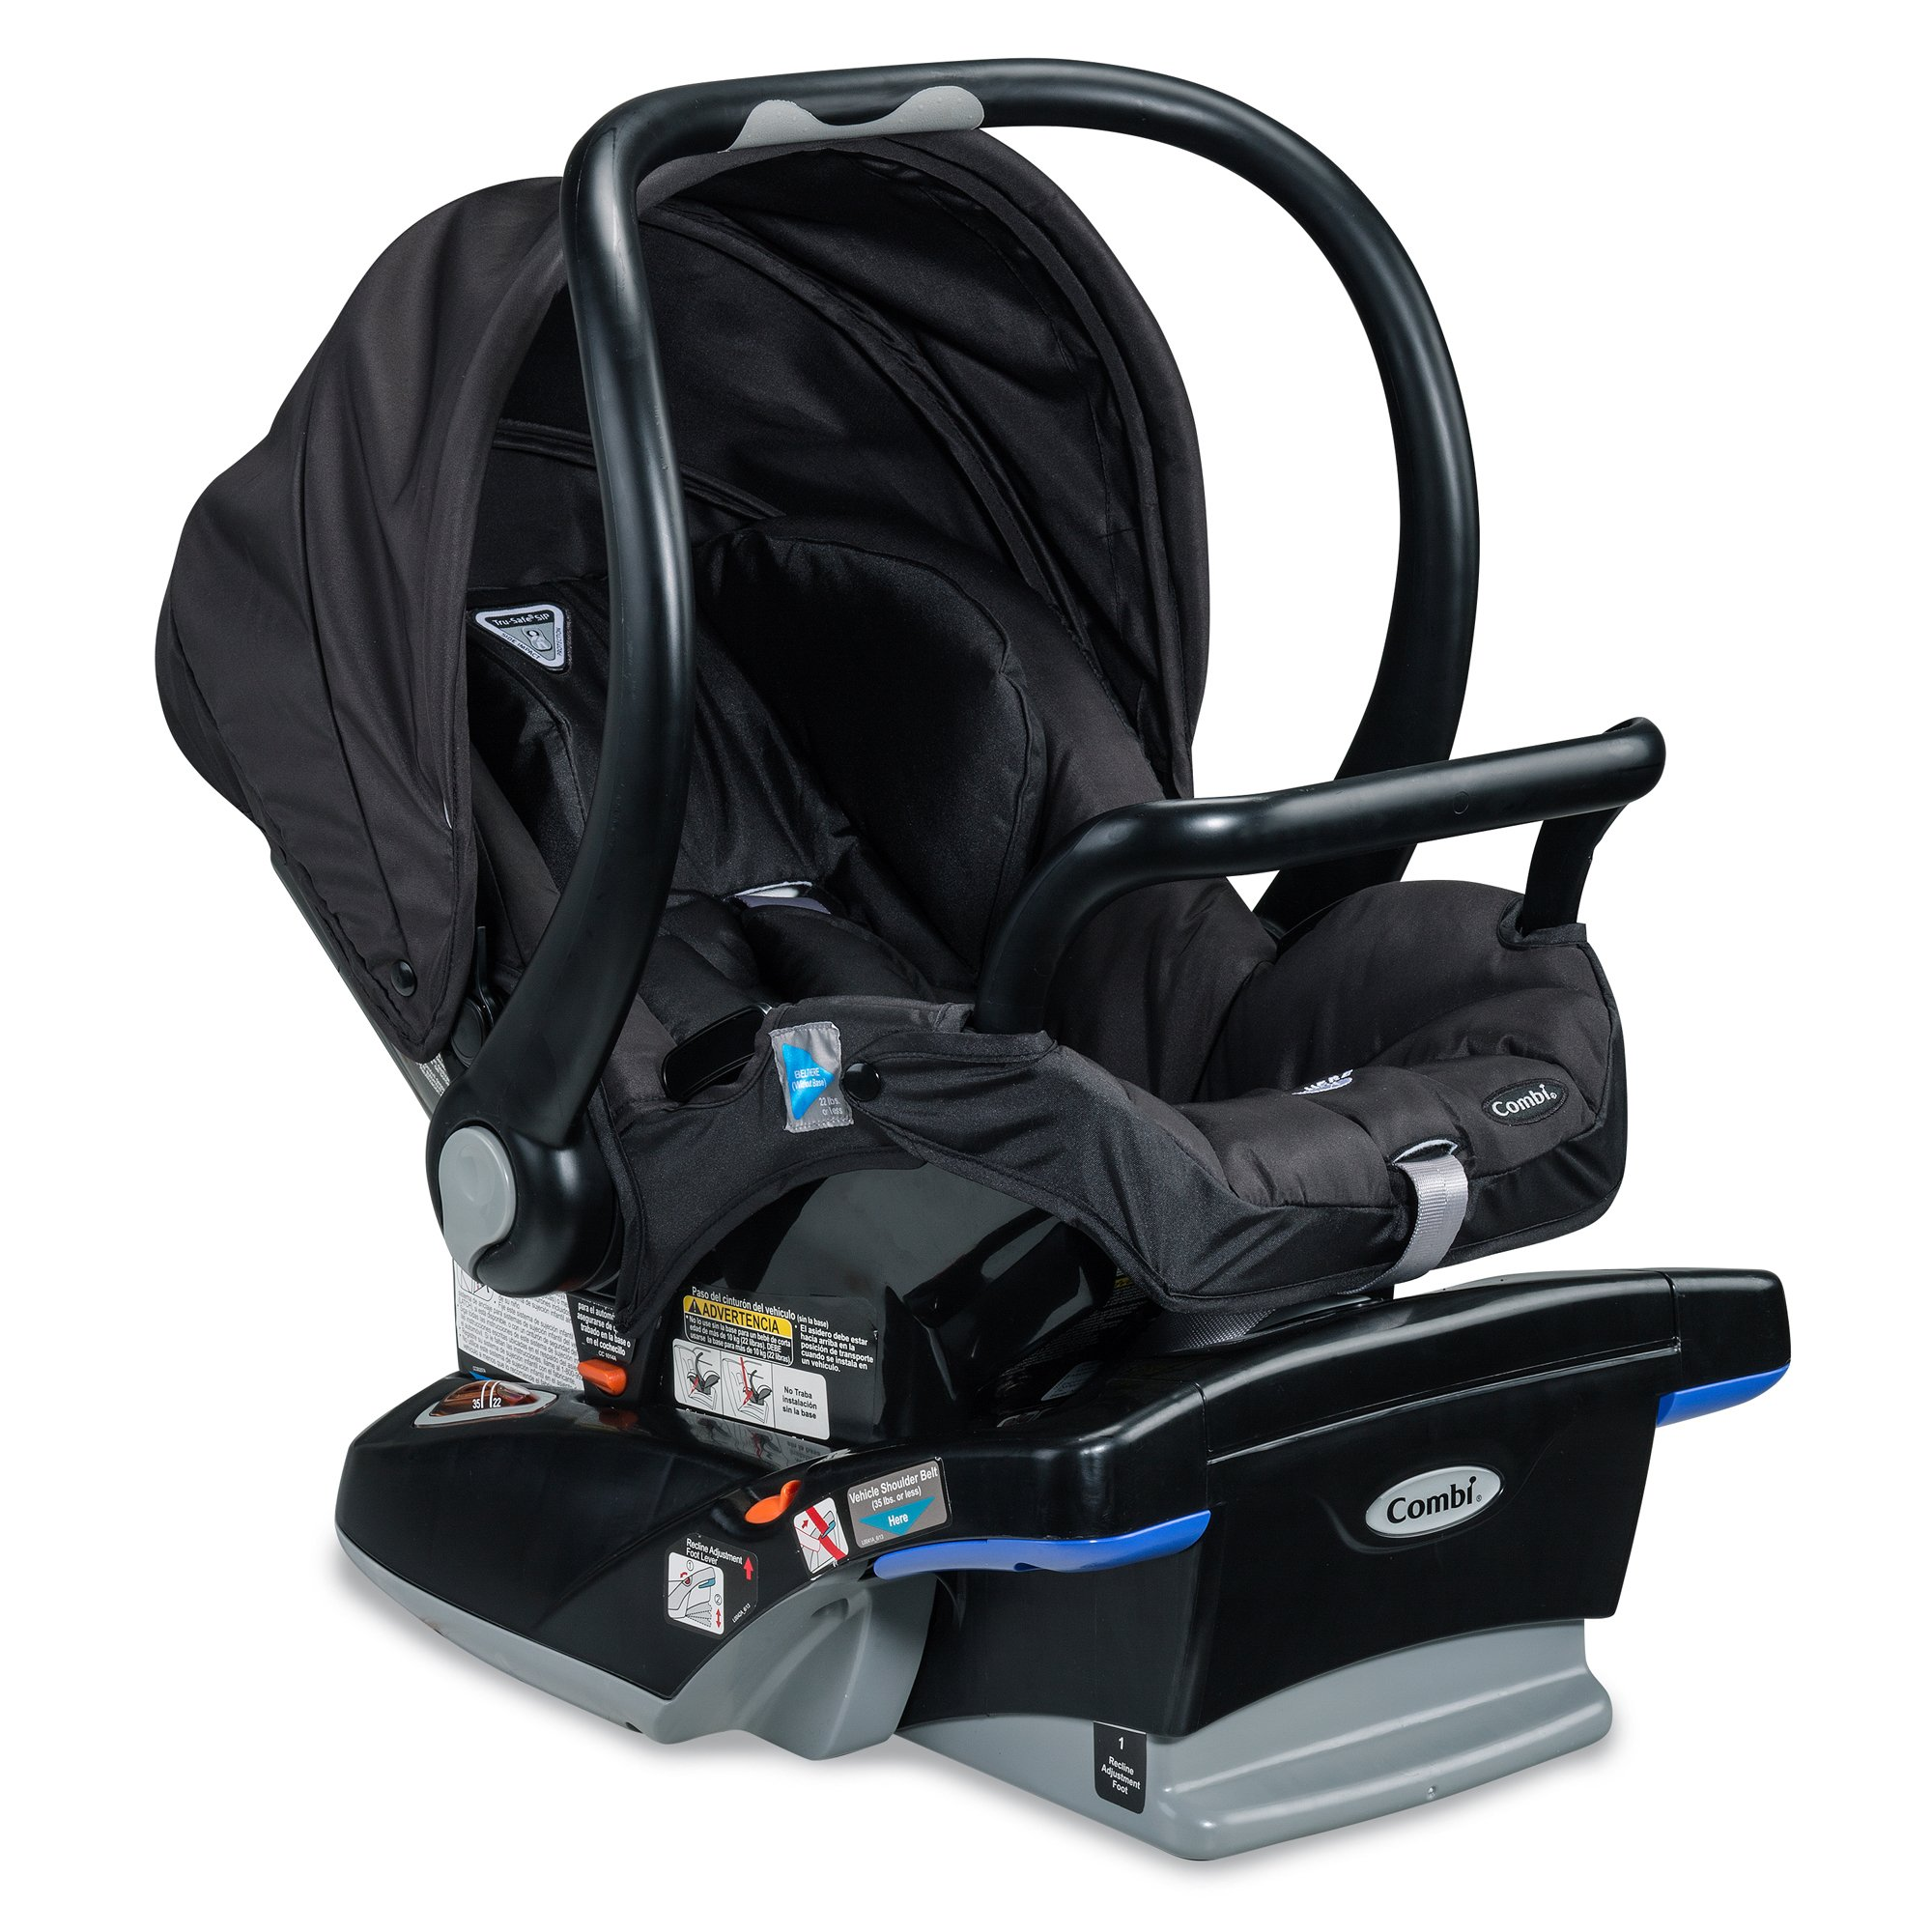 Amazon.com : Combi Lightweight Full Sized Travel System ...